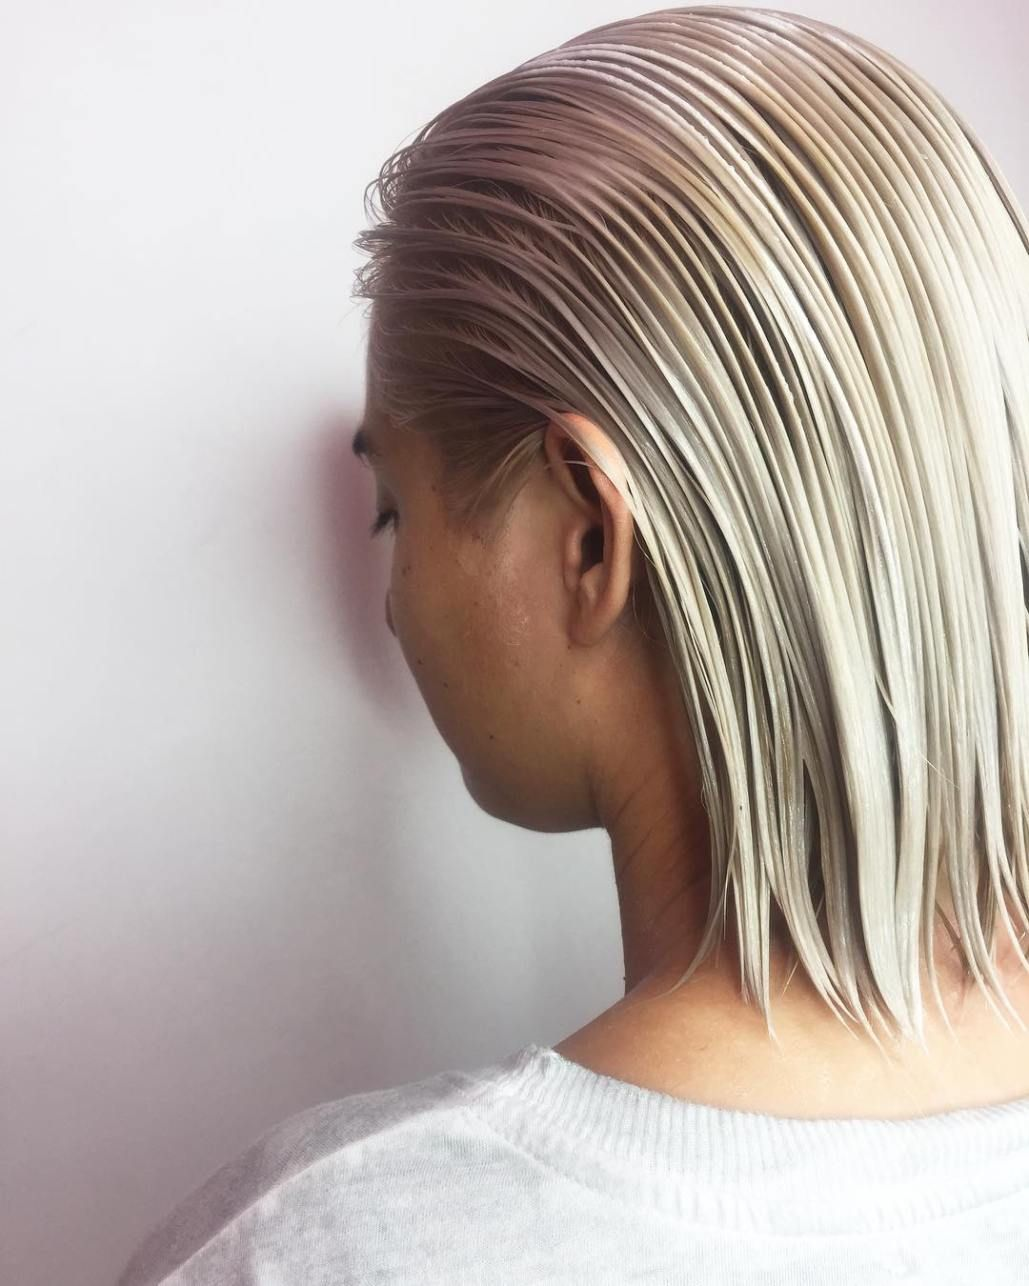 How to Safely Bleach Hair at Home? Bleaching your hair